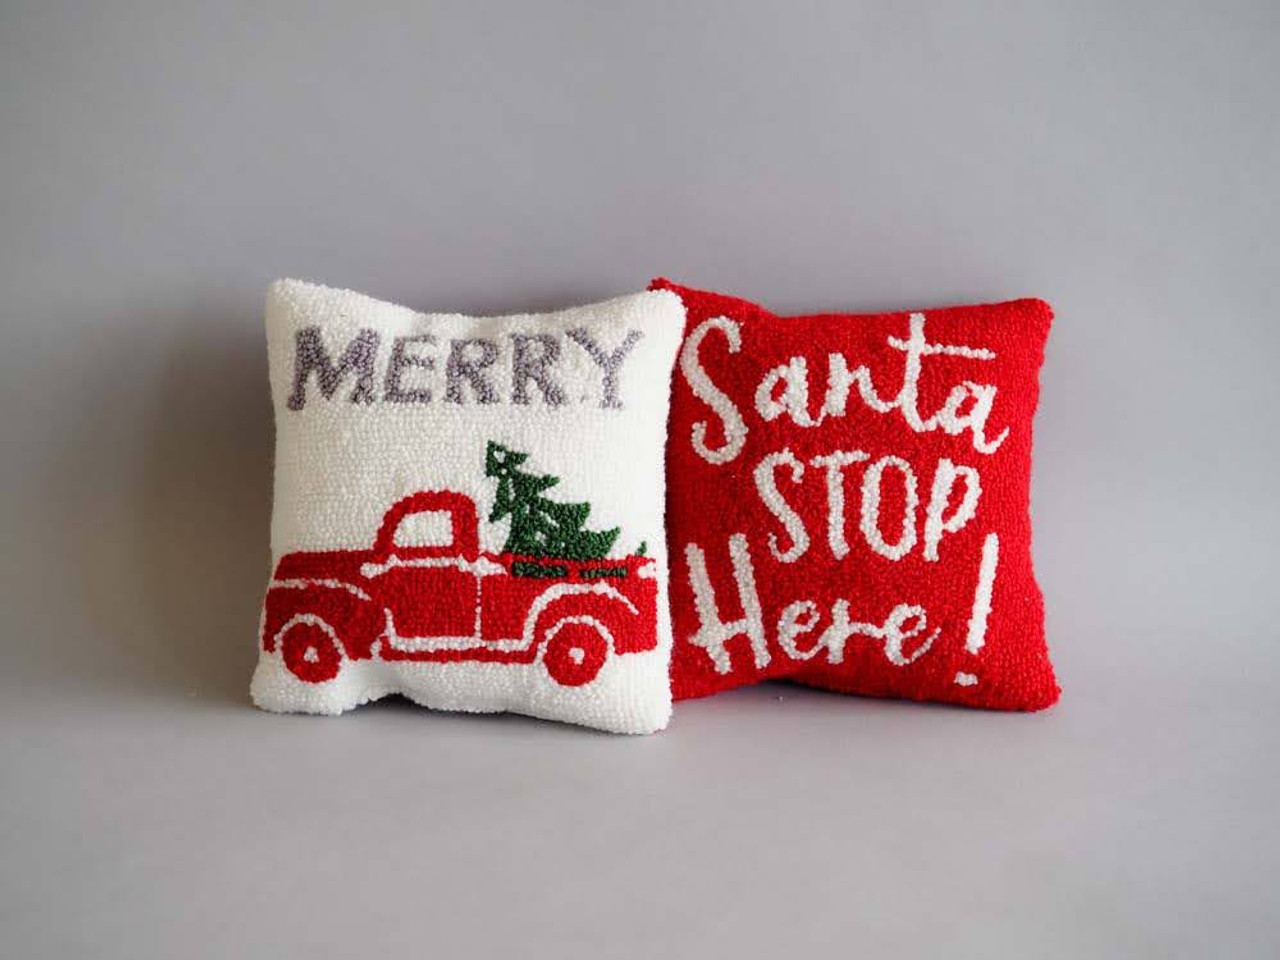 Santa Stop Mini Hook Pillow